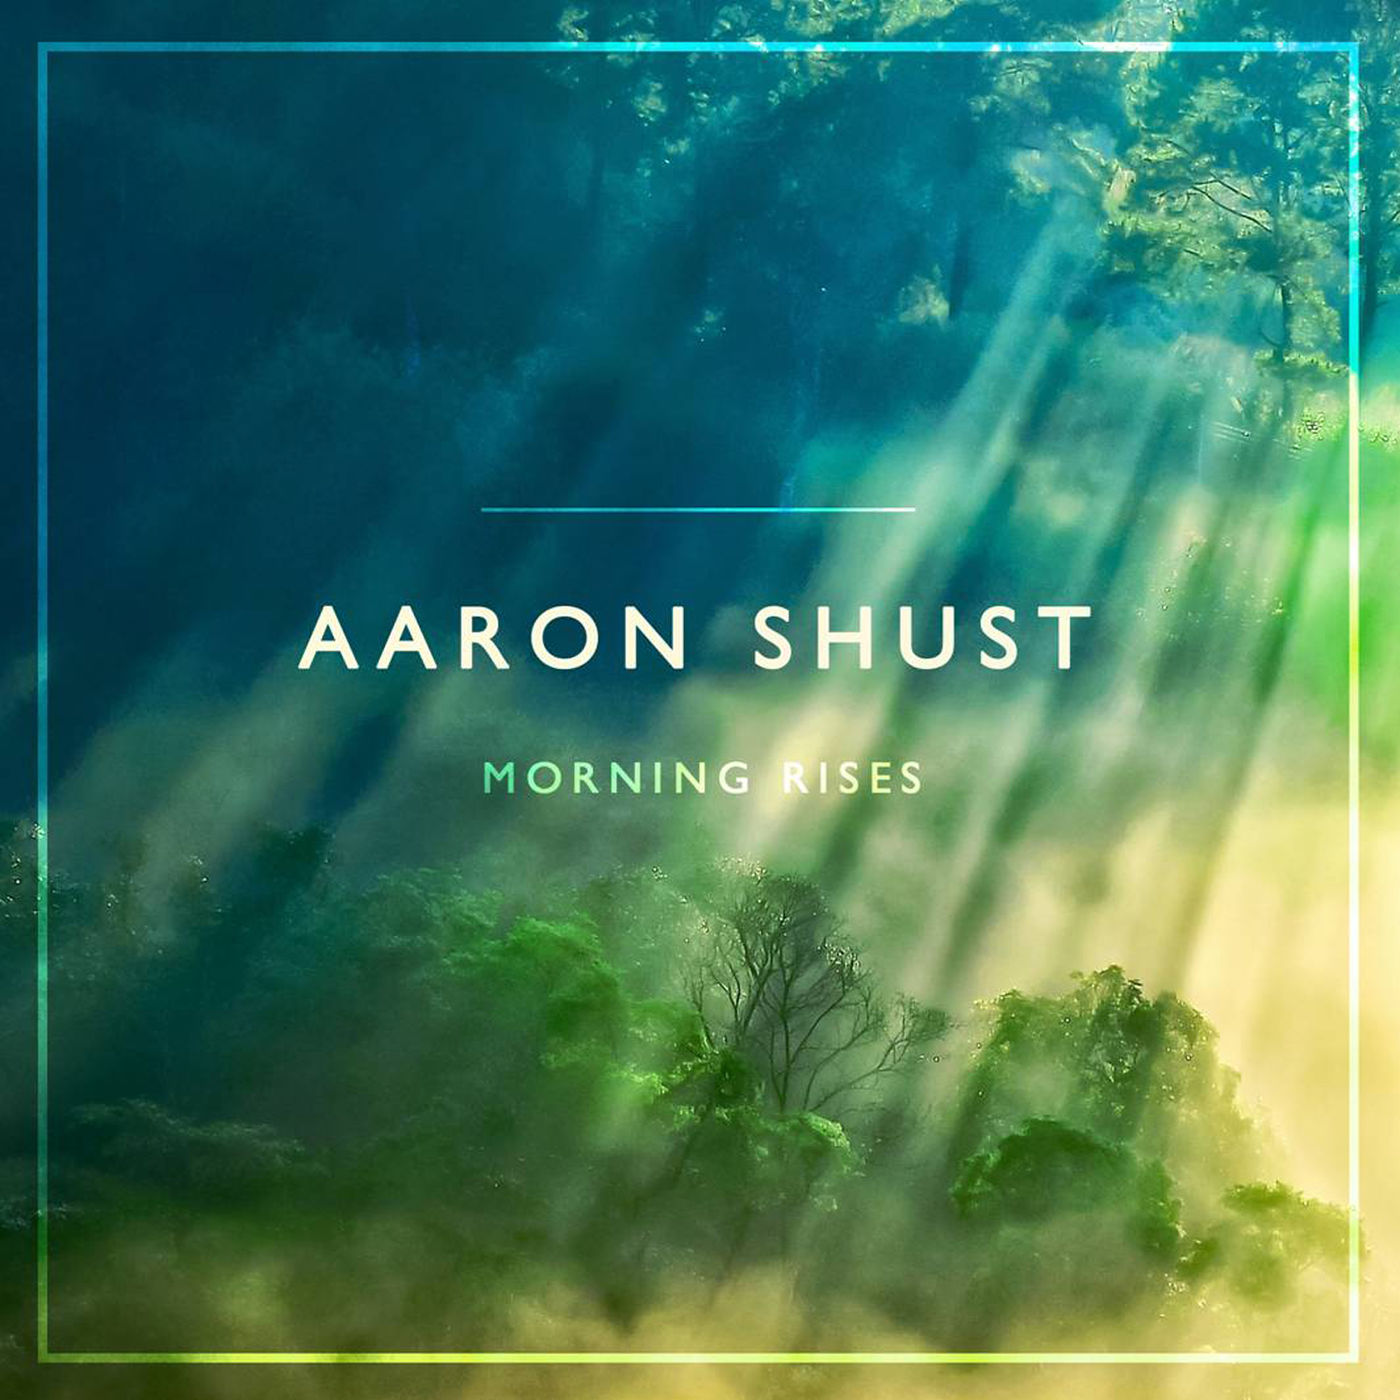 Morning Rises - Aaron Shust